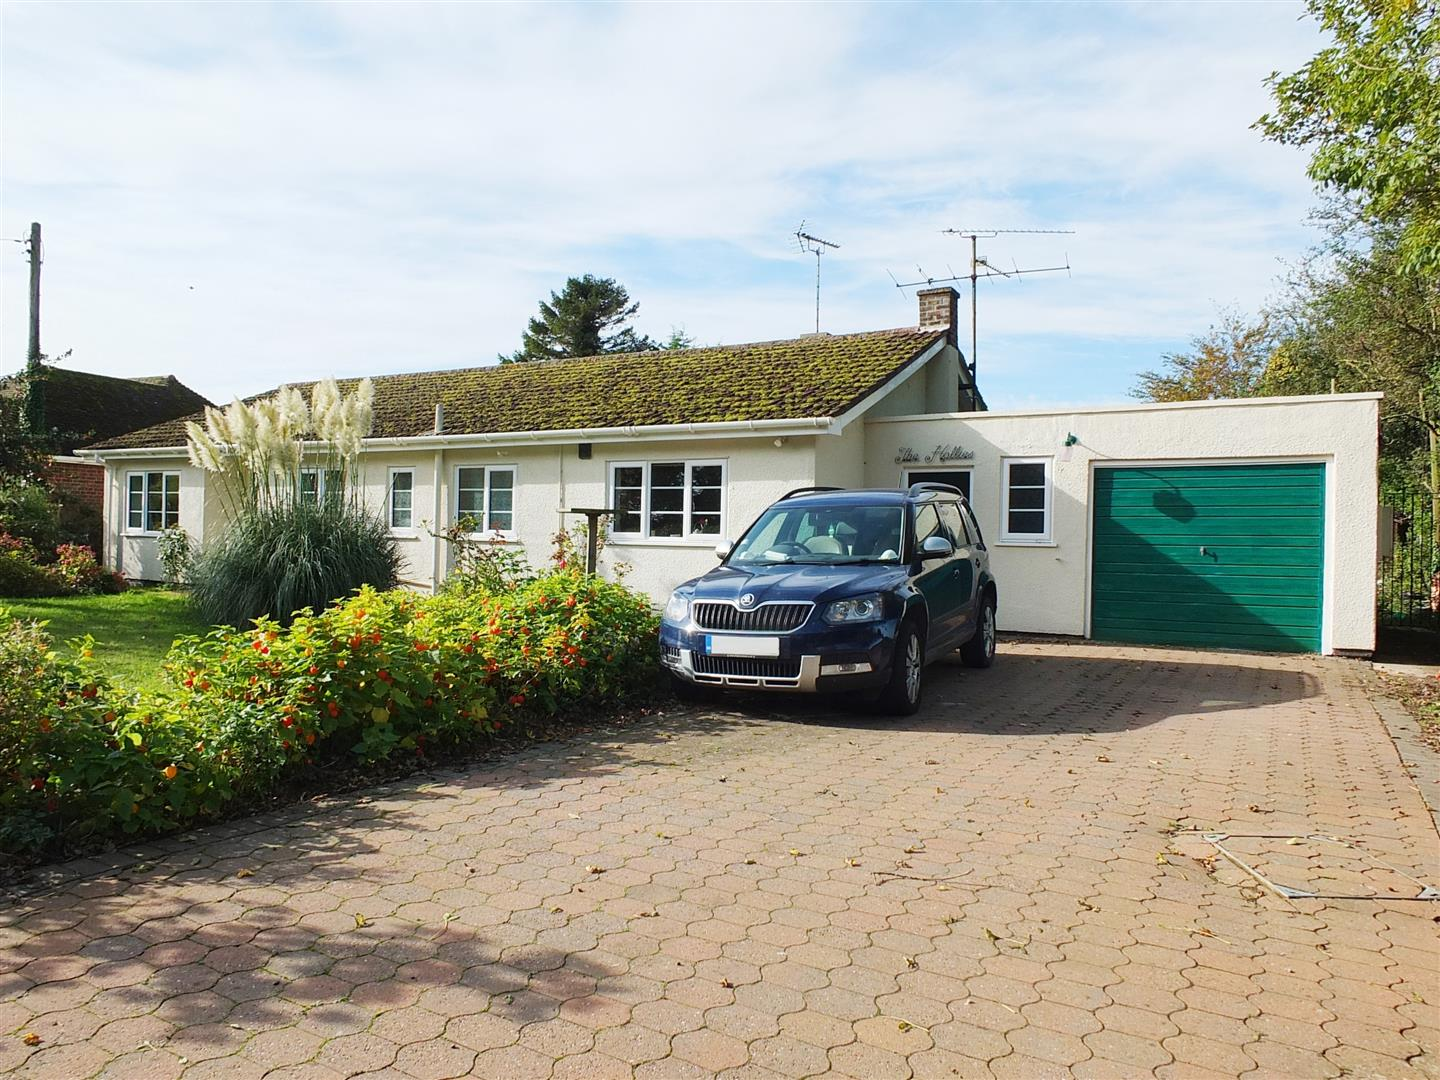 4 bed detached bungalow for sale in Little Sutton Long Sutton Spalding, PE12 9EL, PE12